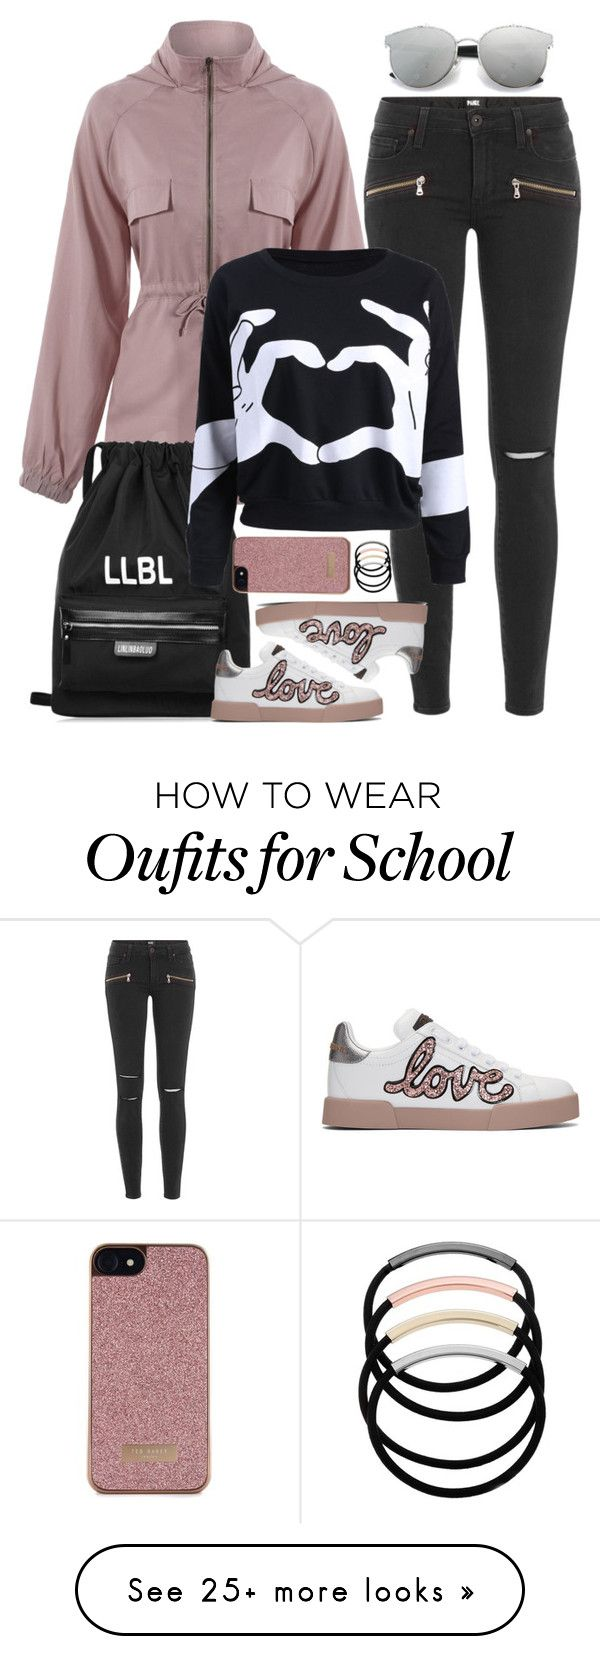 """Campus Chic: First Day of School"" by beebeely-look on Polyvore featuring Paige Denim, Dolce&Gabbana, Ted Baker, L. Erickson, BackToSchool, outfit, sammydress, schooloutfit and back2school"